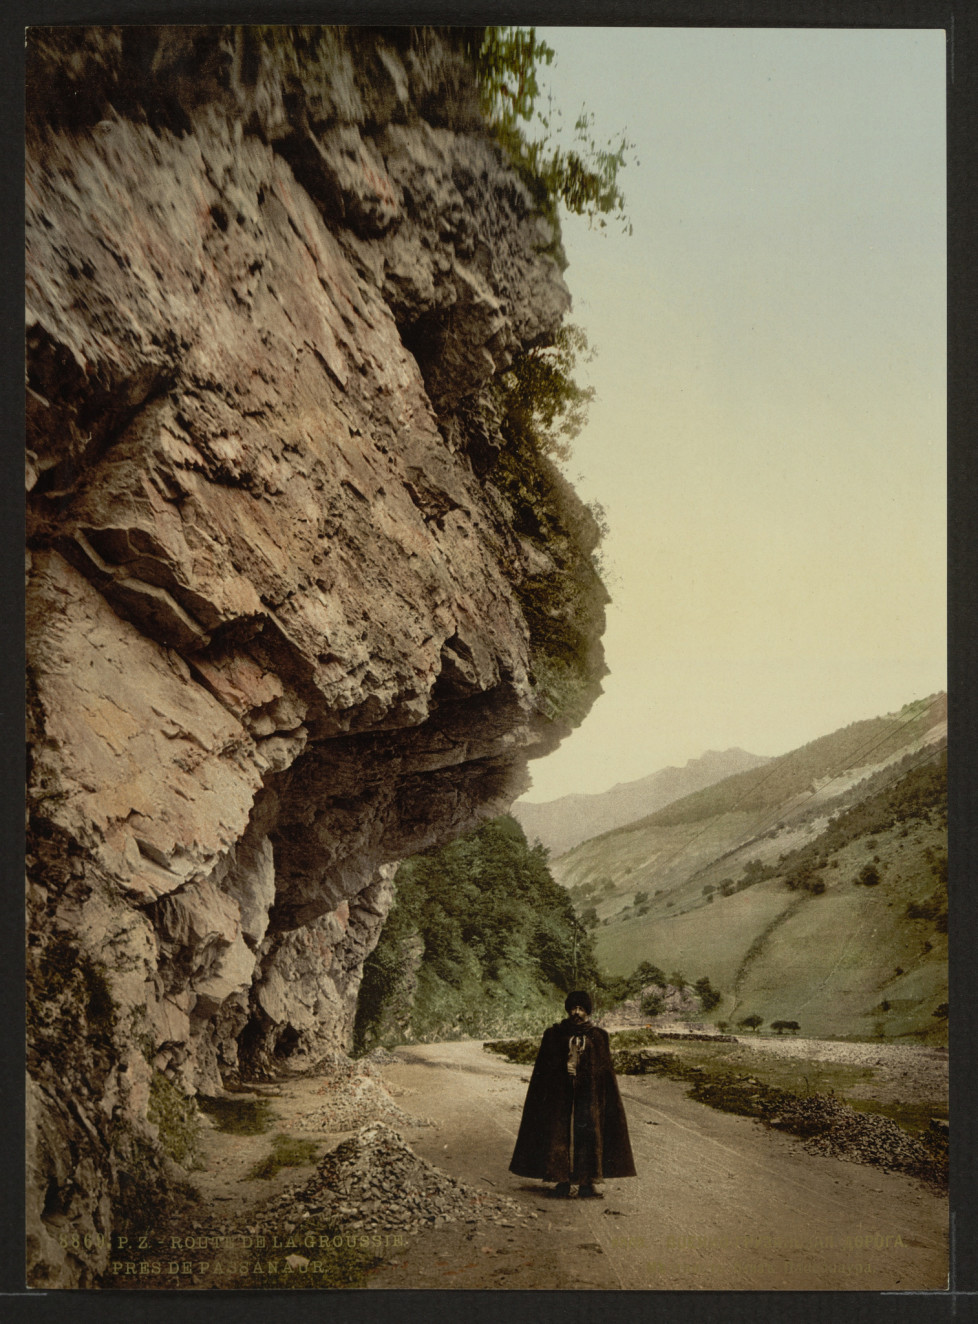 The road, near Passanaur, Groussie, (i.e., Georgia) between 1890 - 1900 (c) Library of Congress